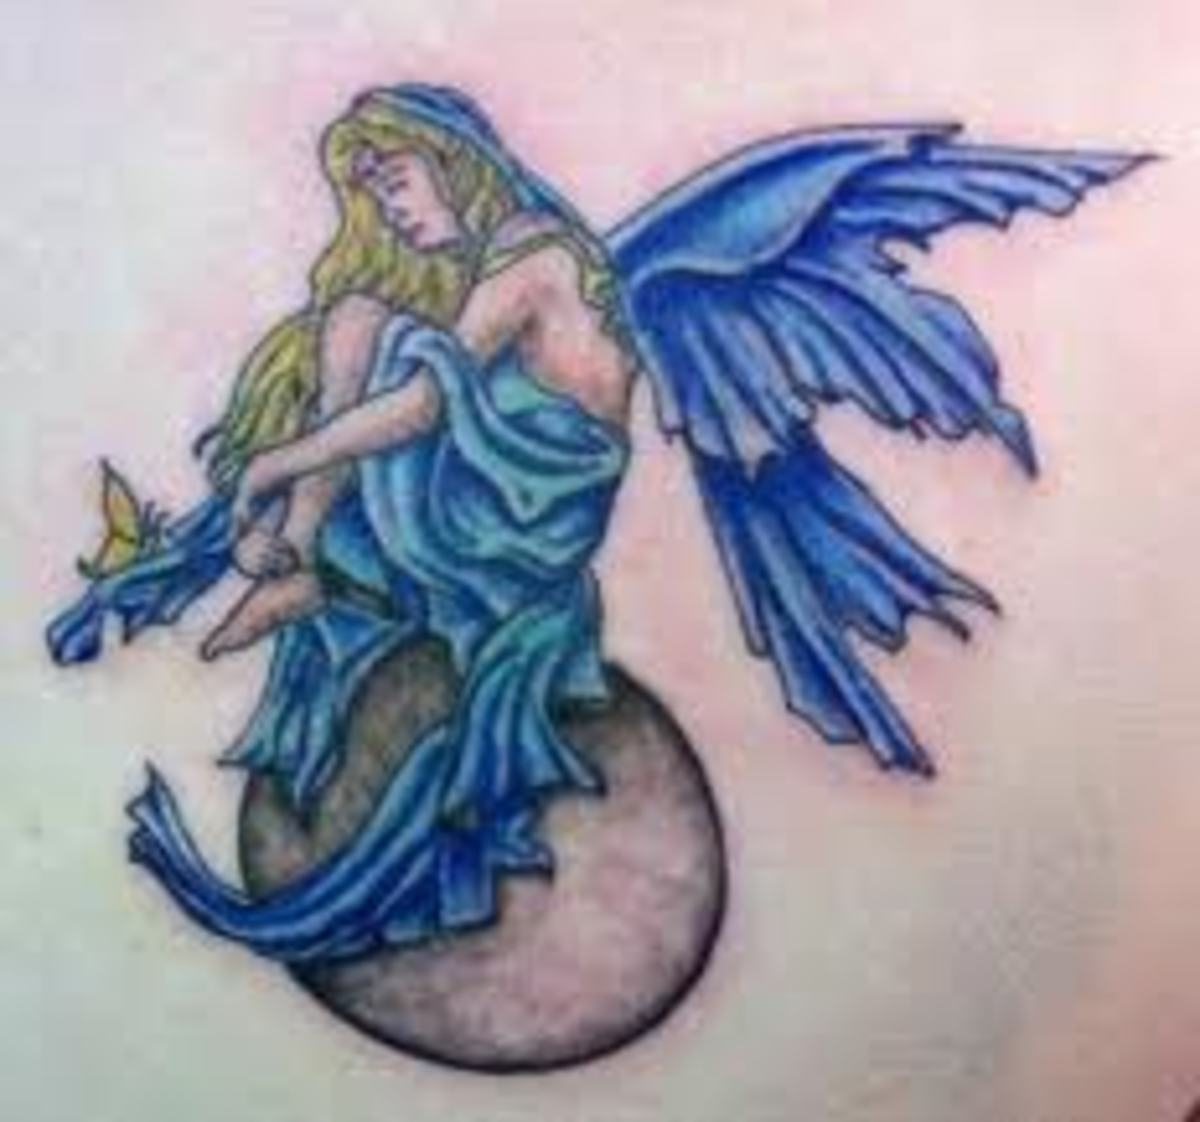 fairy-tattoos-designs-and-meanings-pixie-and-sprite-tattoos-fairy-history